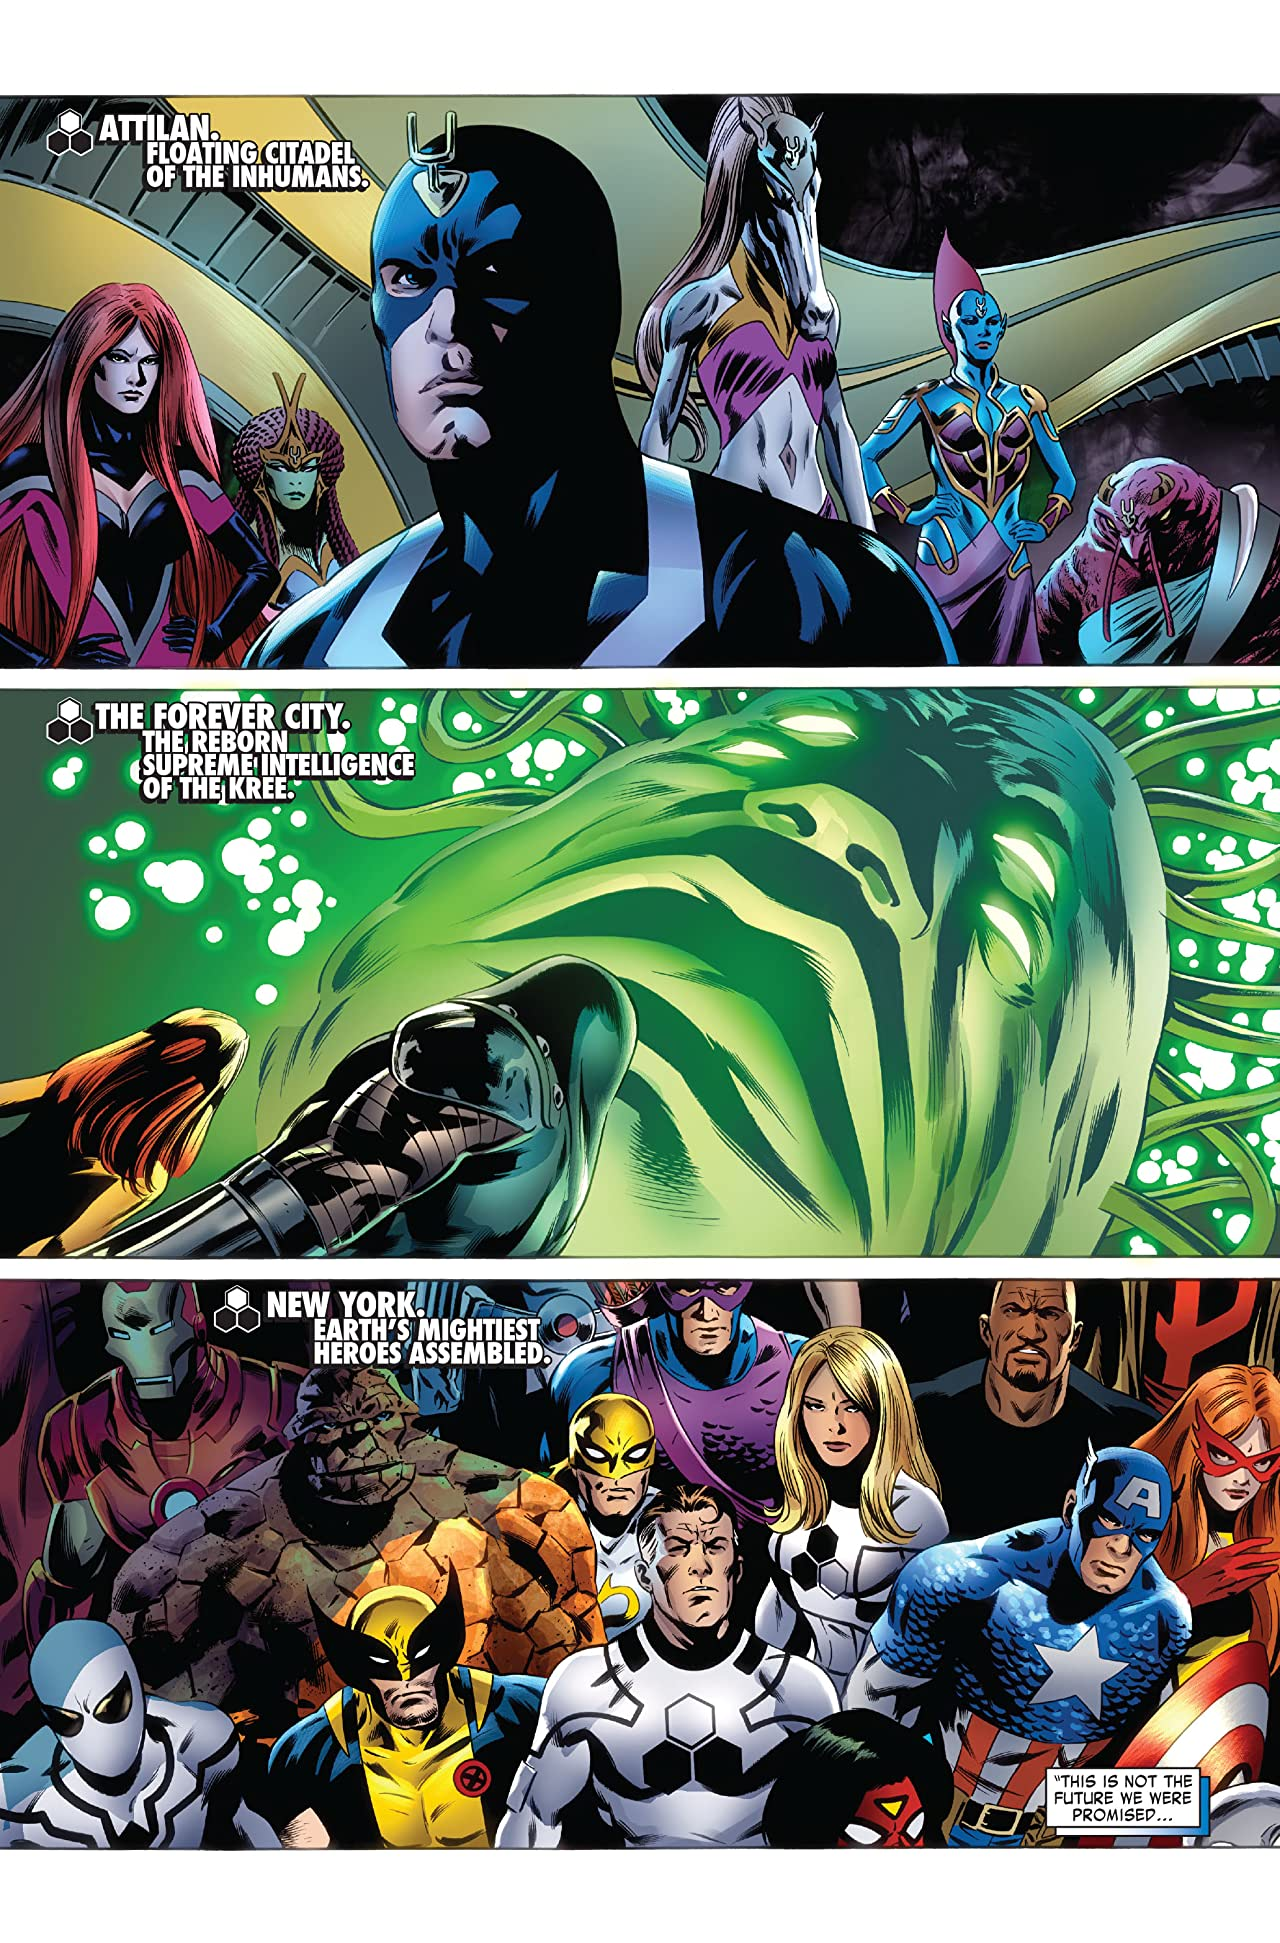 Fantastic Four By Jonathan Hickman Vol. 5